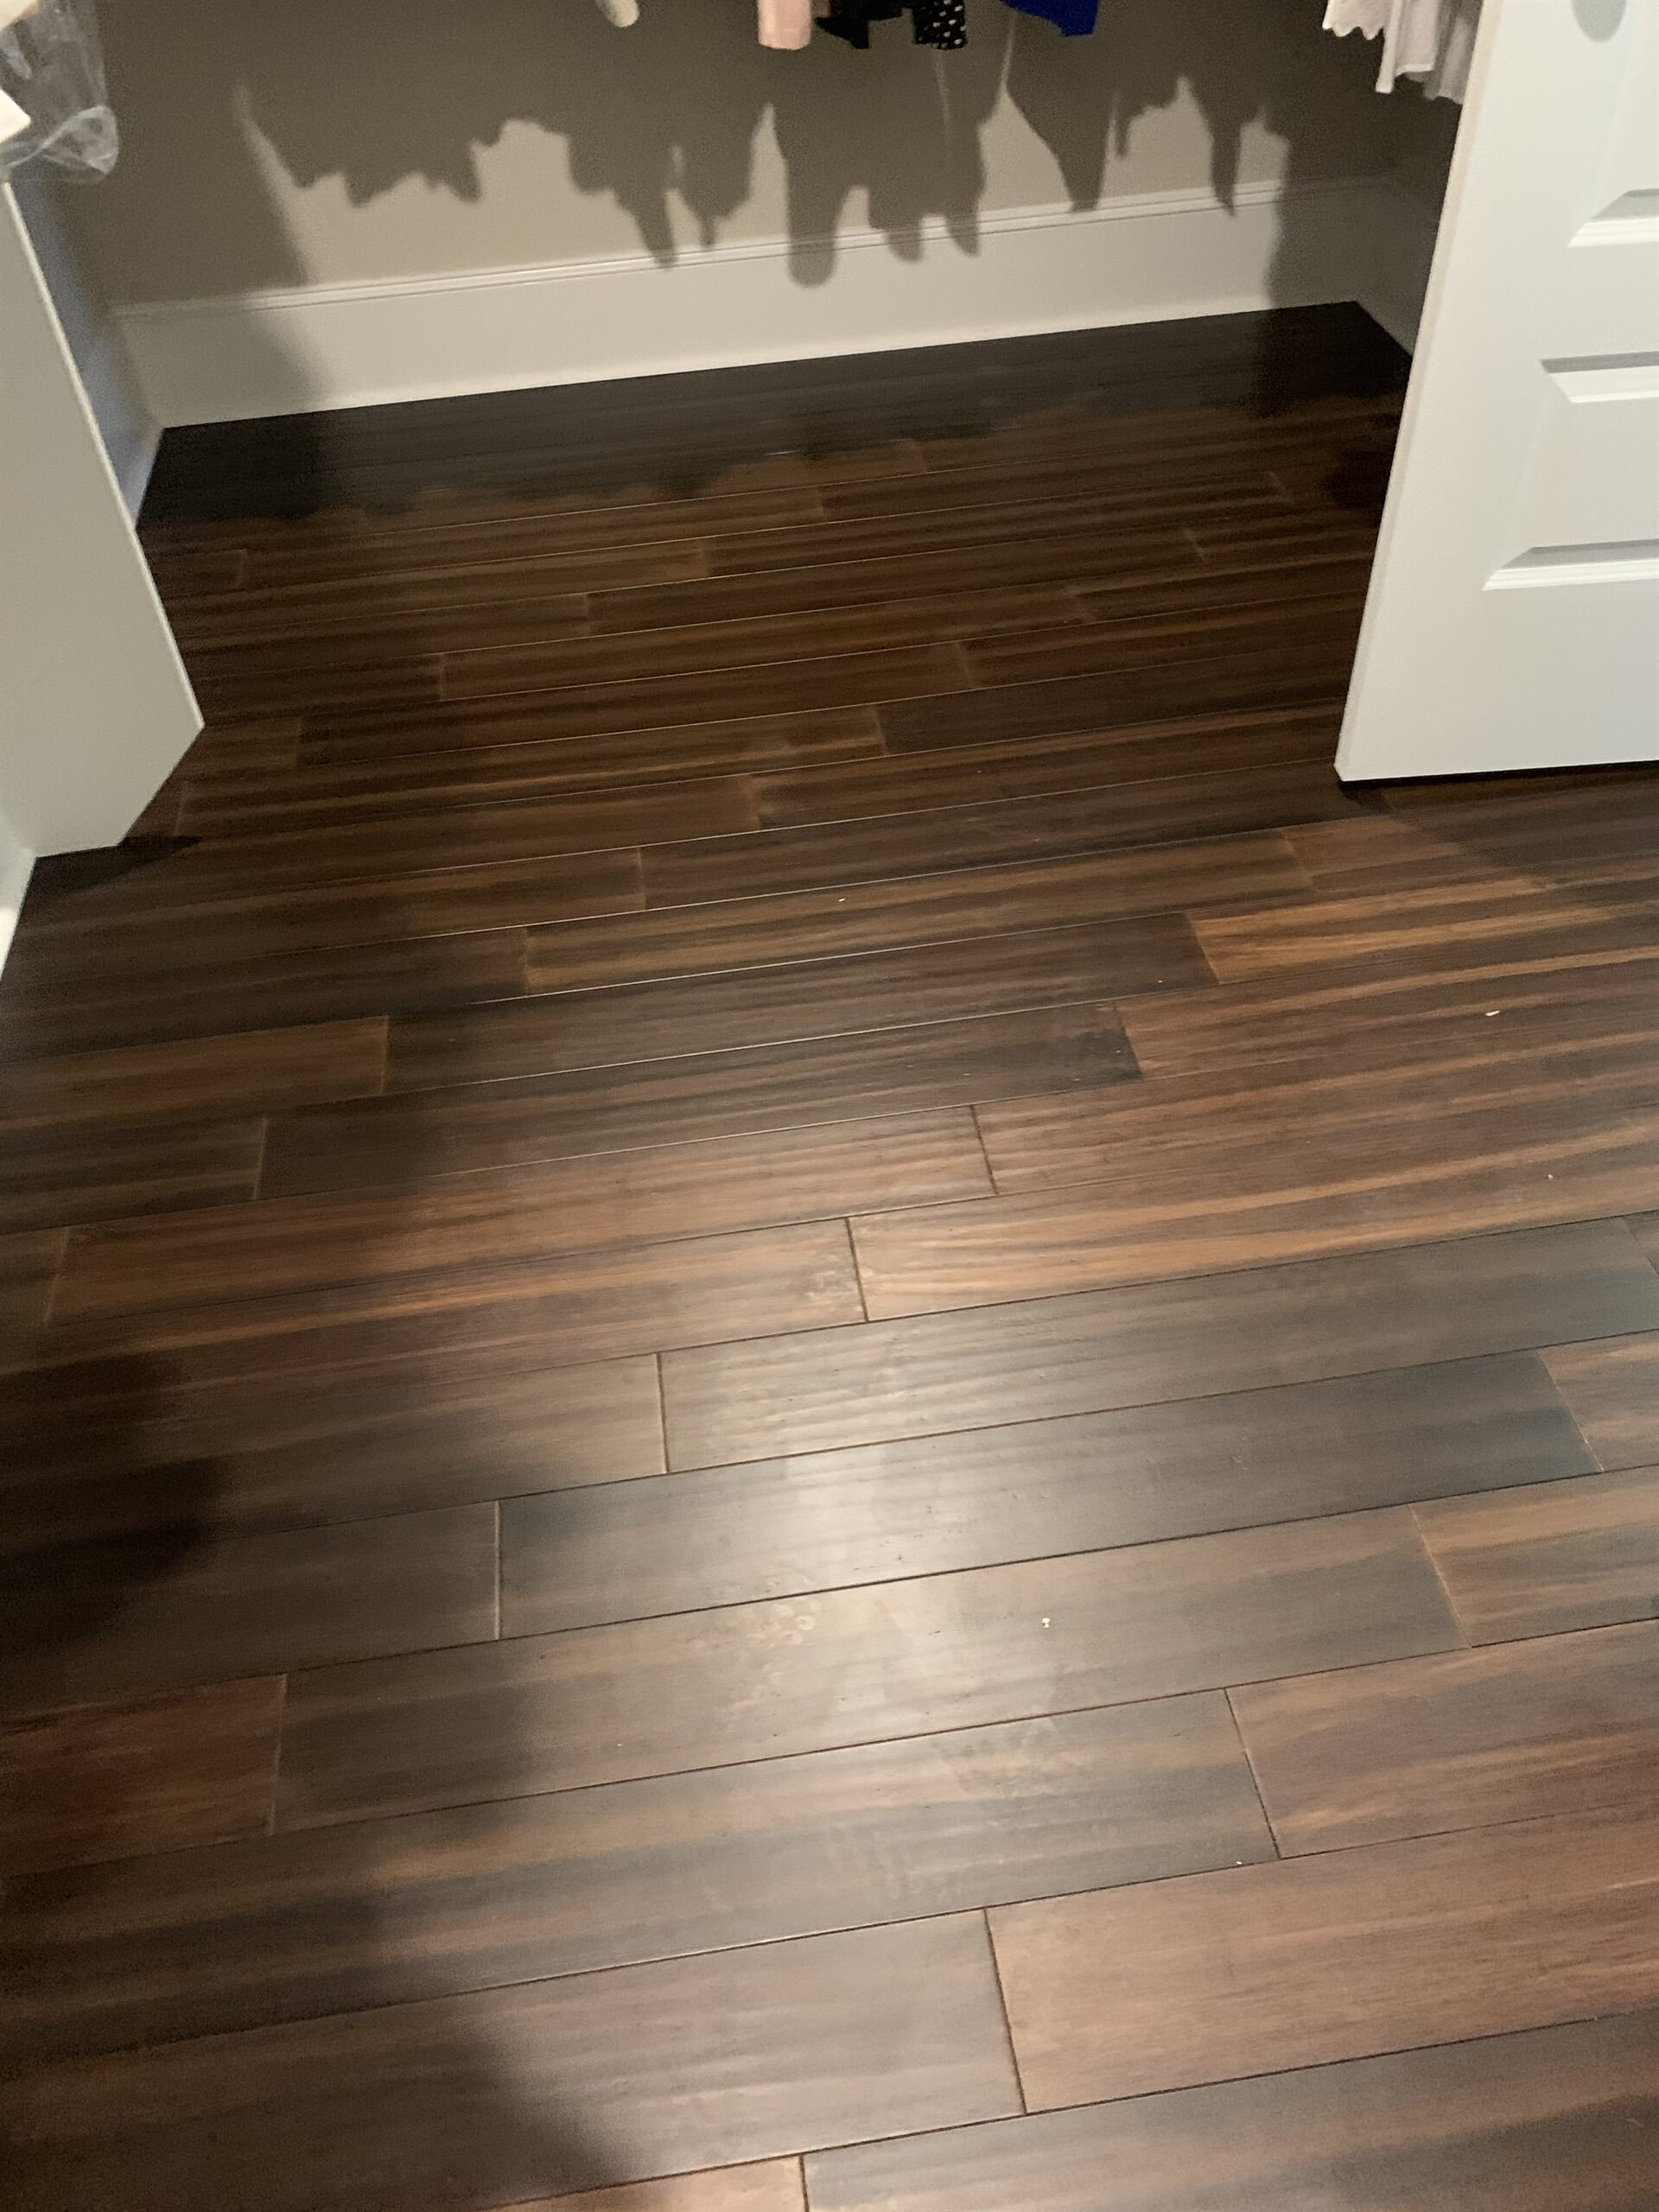 Bamboo flooring from Houston Floor Installation Services in Spring, TX